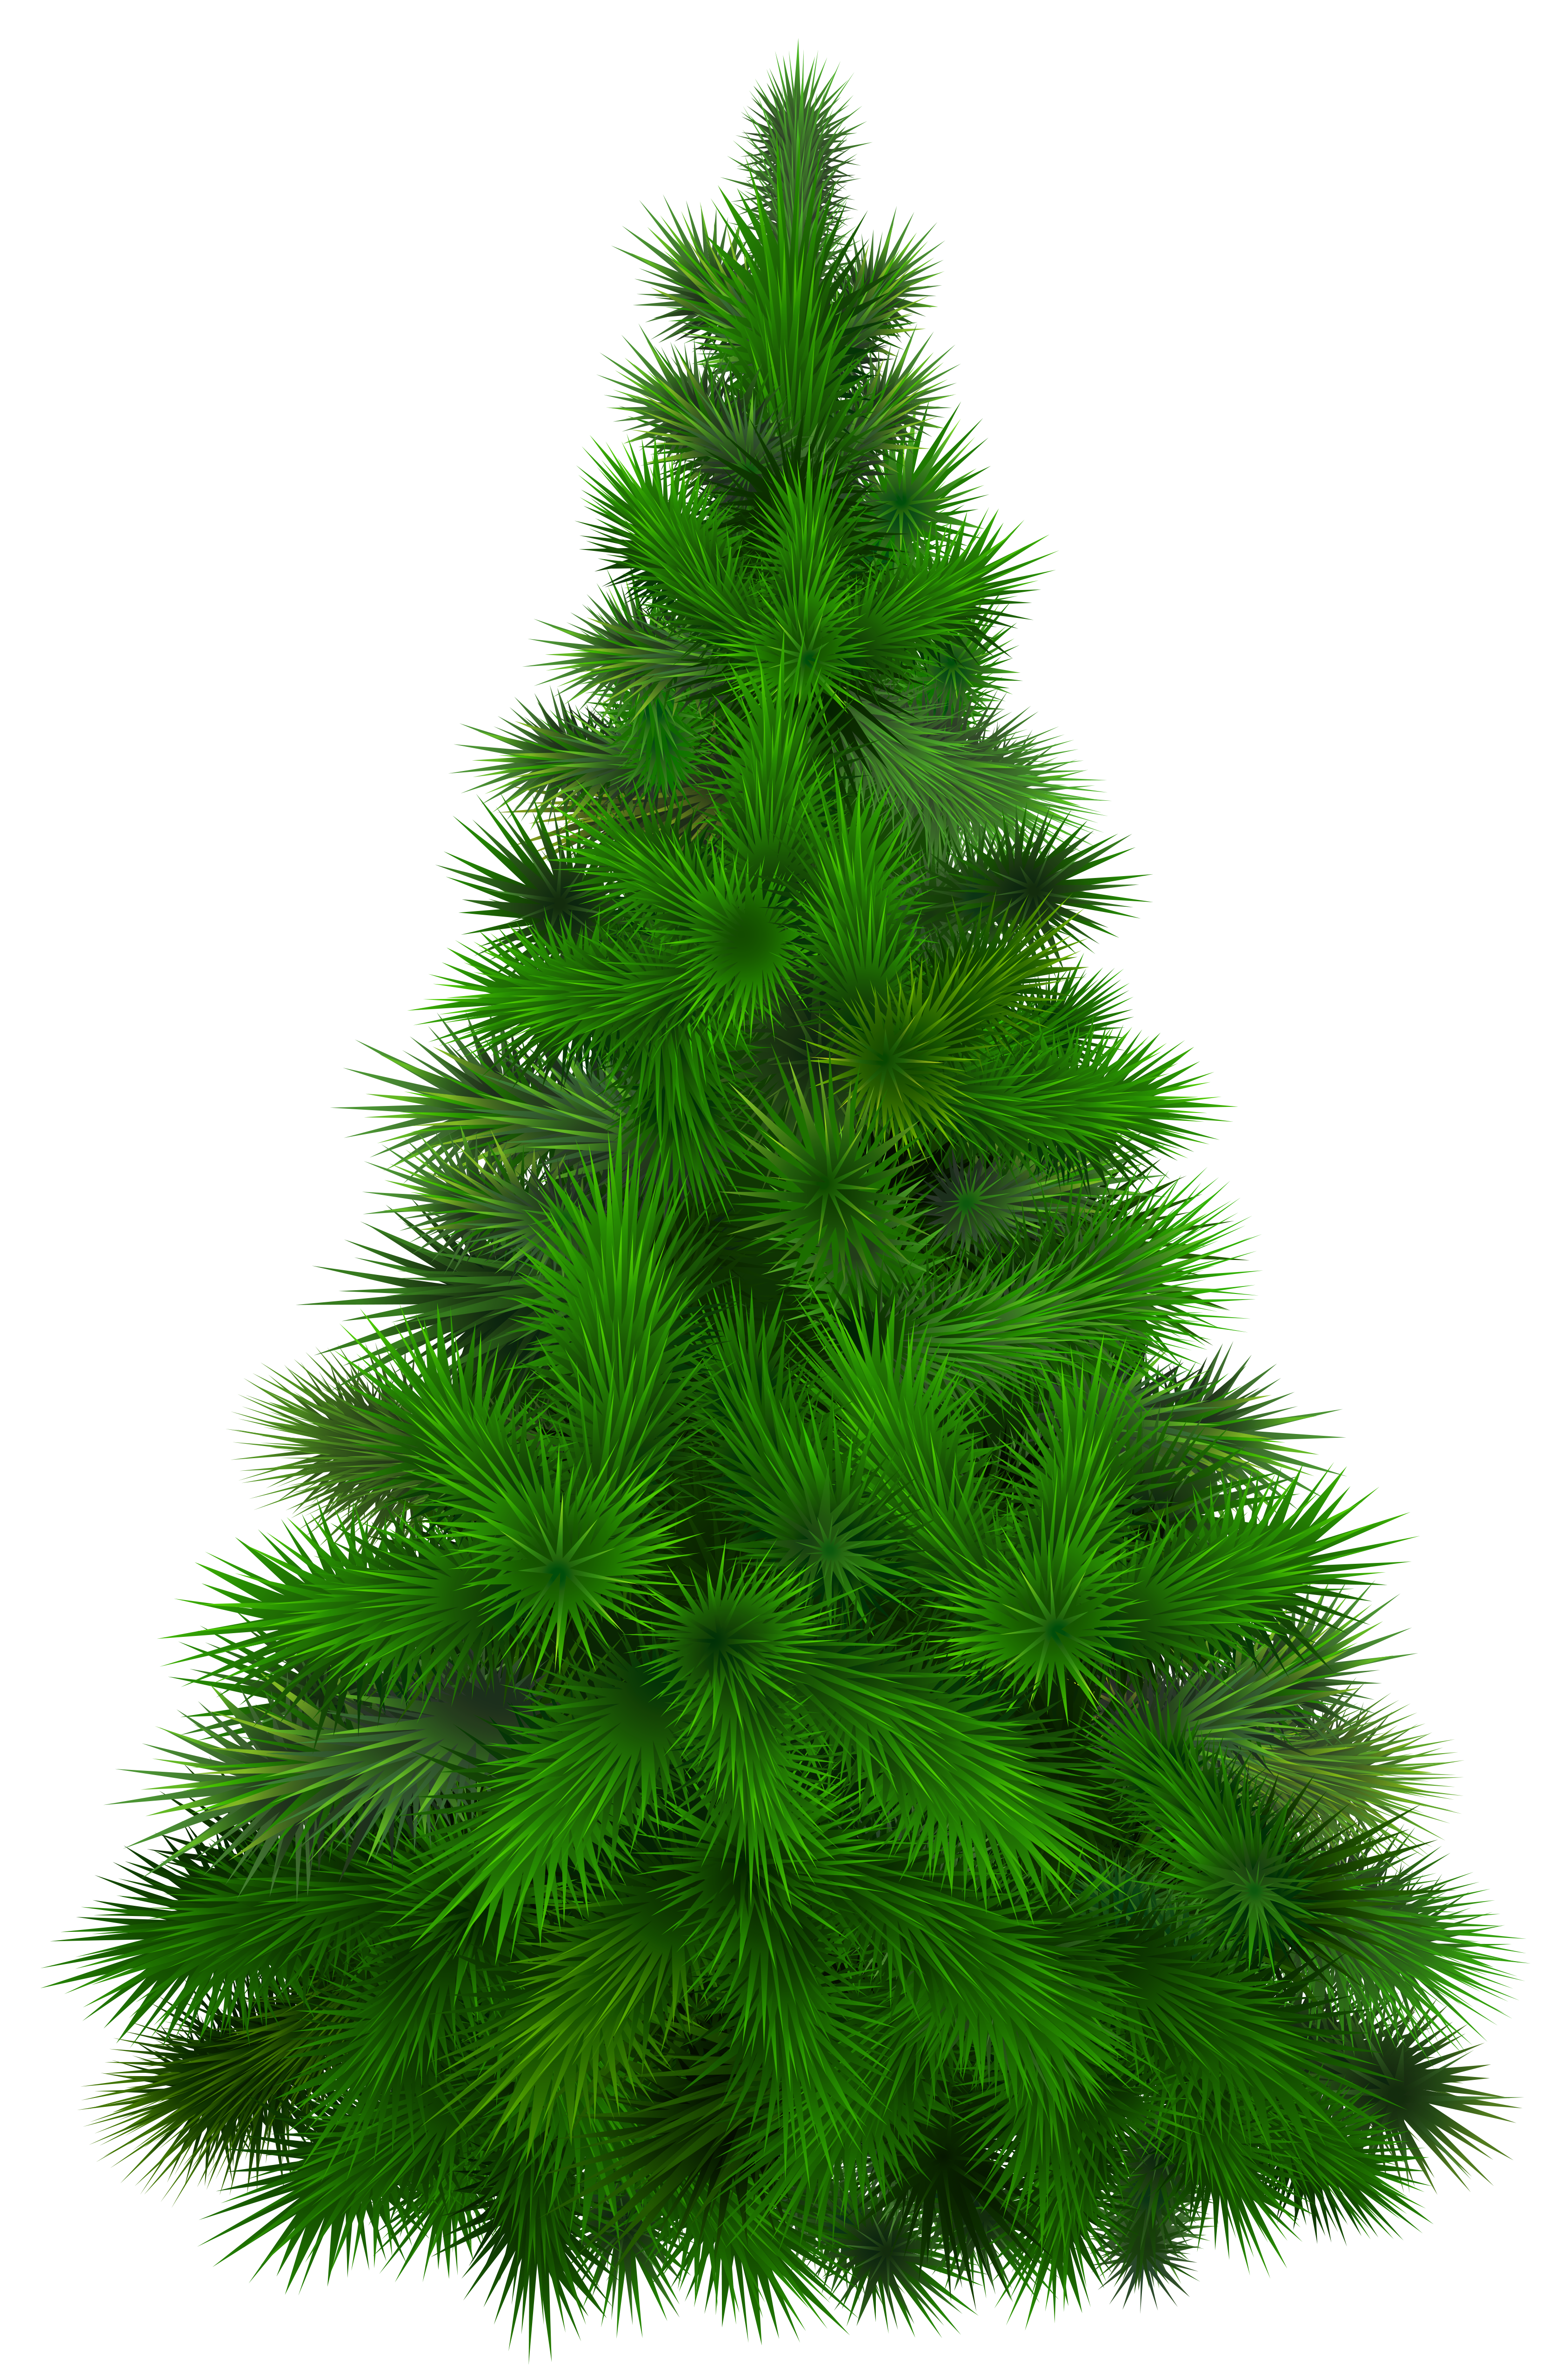 medium resolution of pine tree clipart cypress tree pencil and in color pine